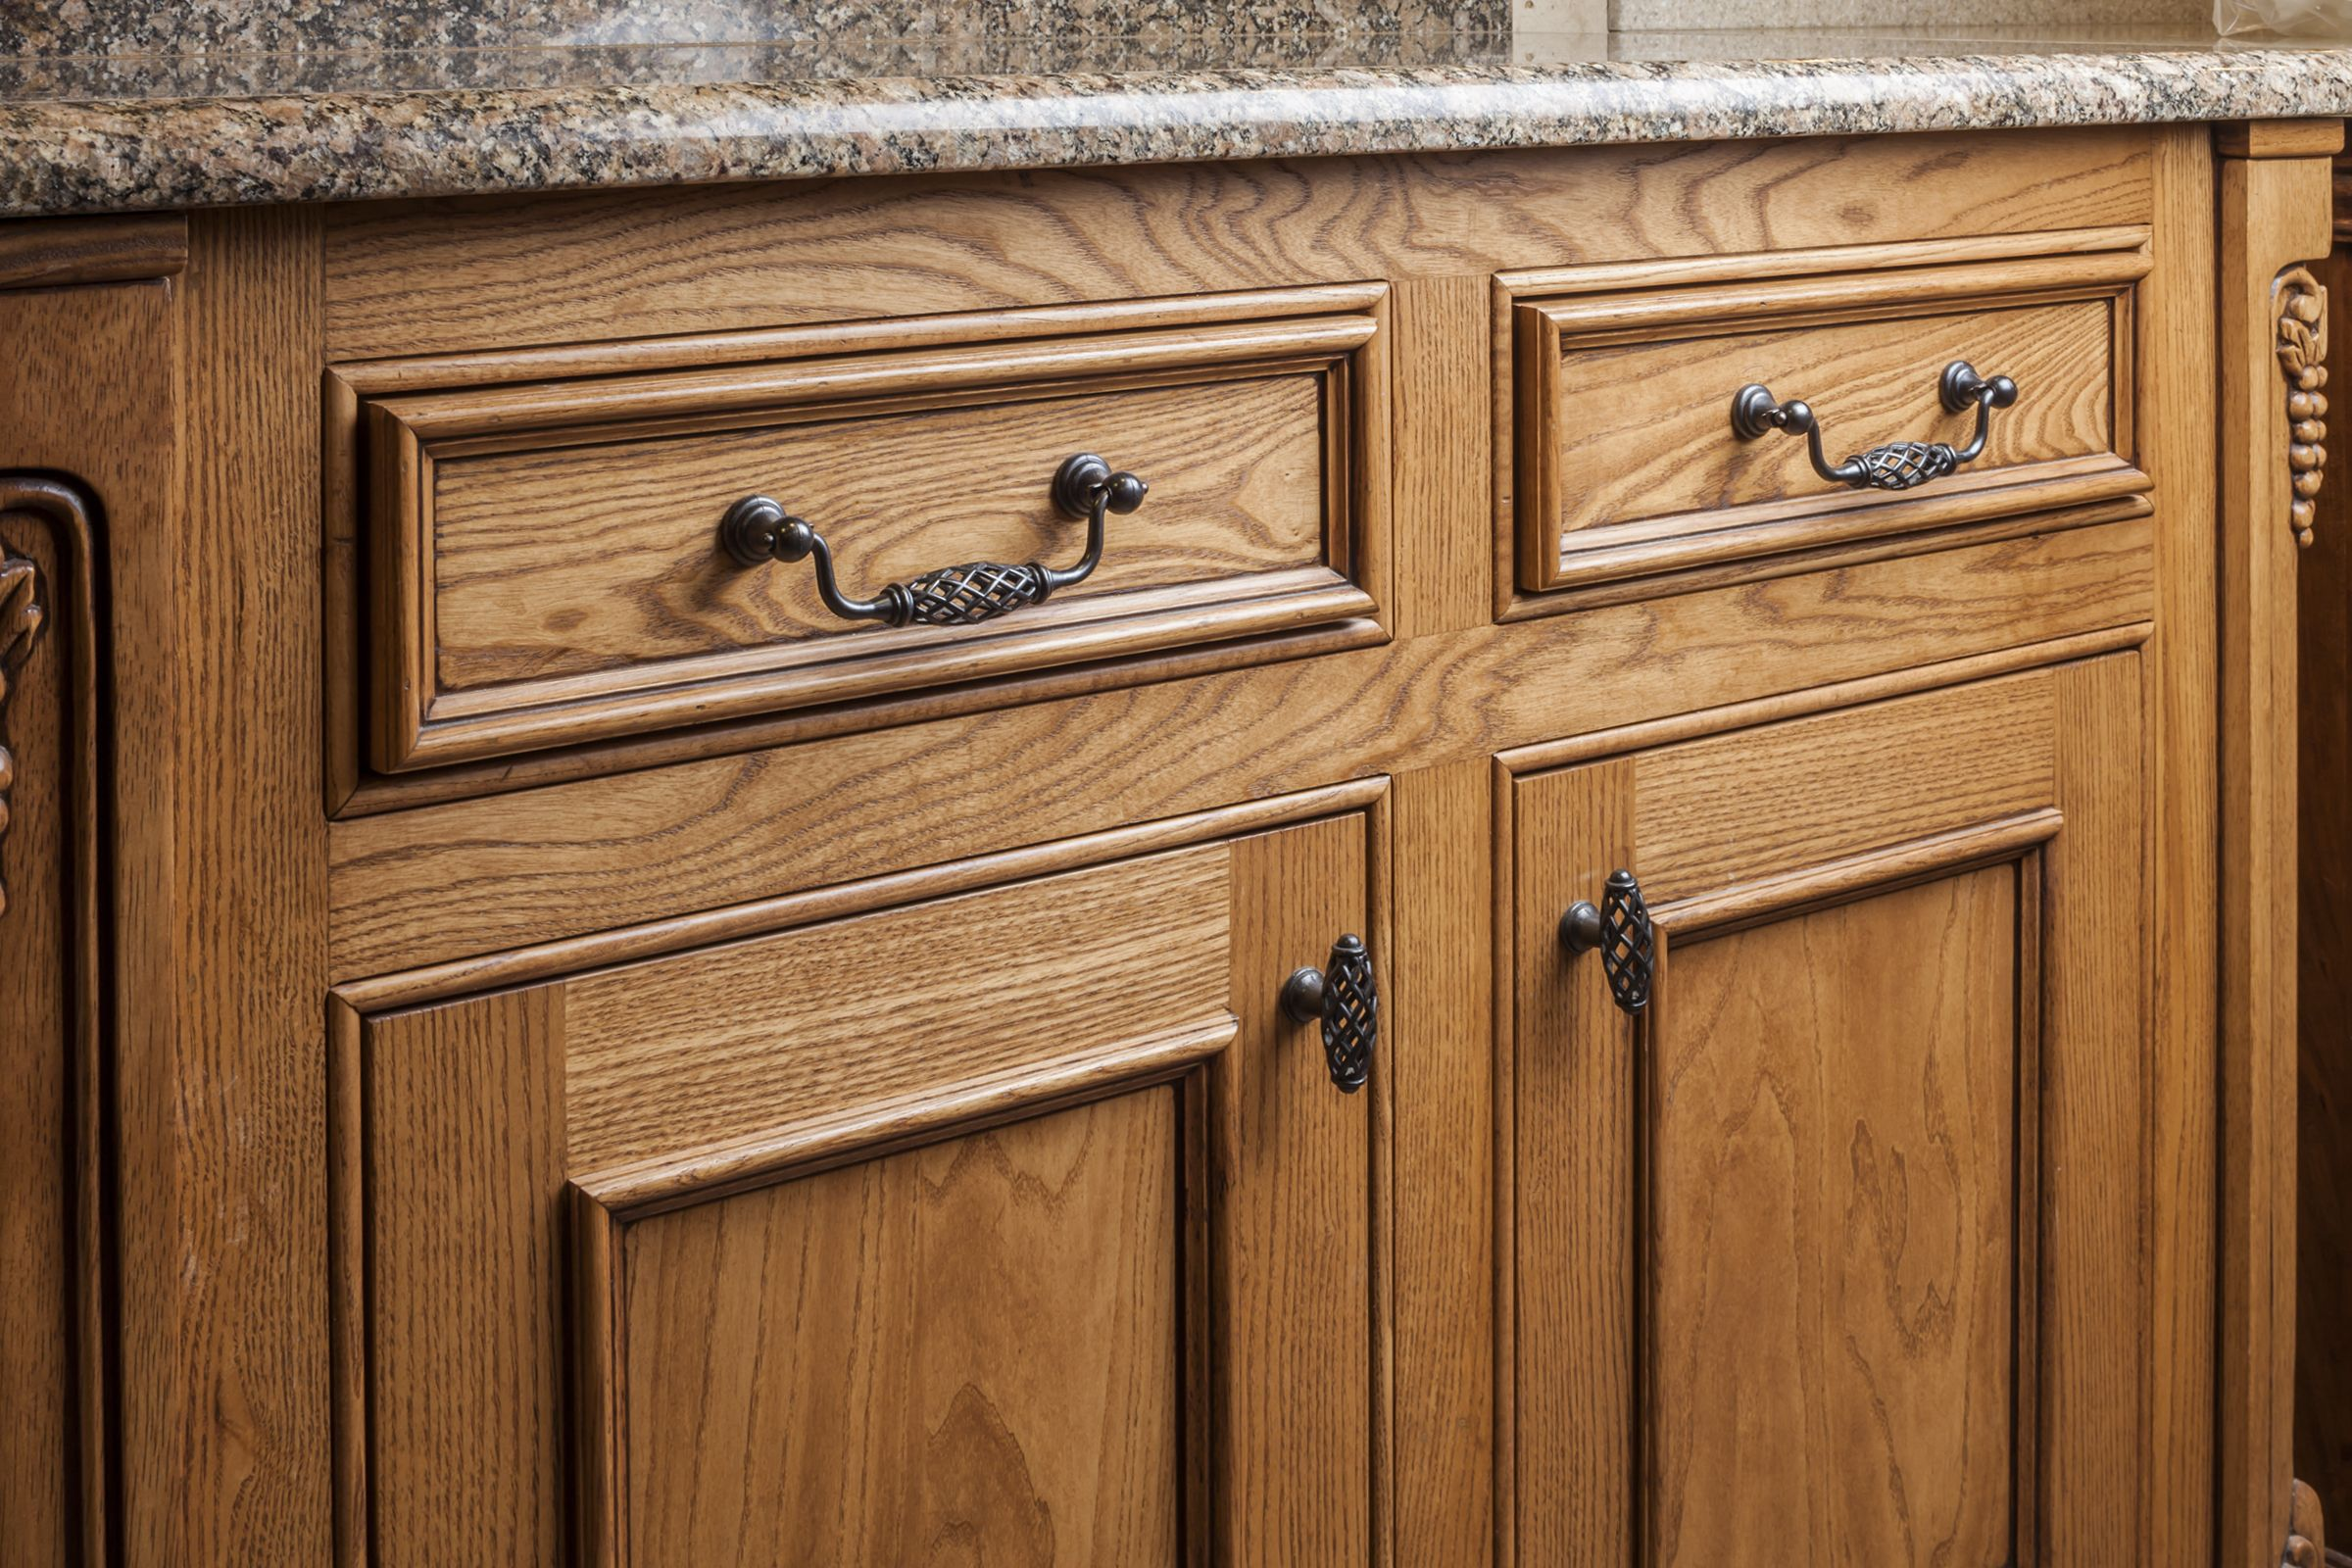 marvelous Tuscan Kitchen Cabinet Hardware Part - 15: Tuscany cabinet knobs and pulls from Jeffrey Alexander by Hardware  Resources. (749-128DACM u0026 749DACM shown in use)